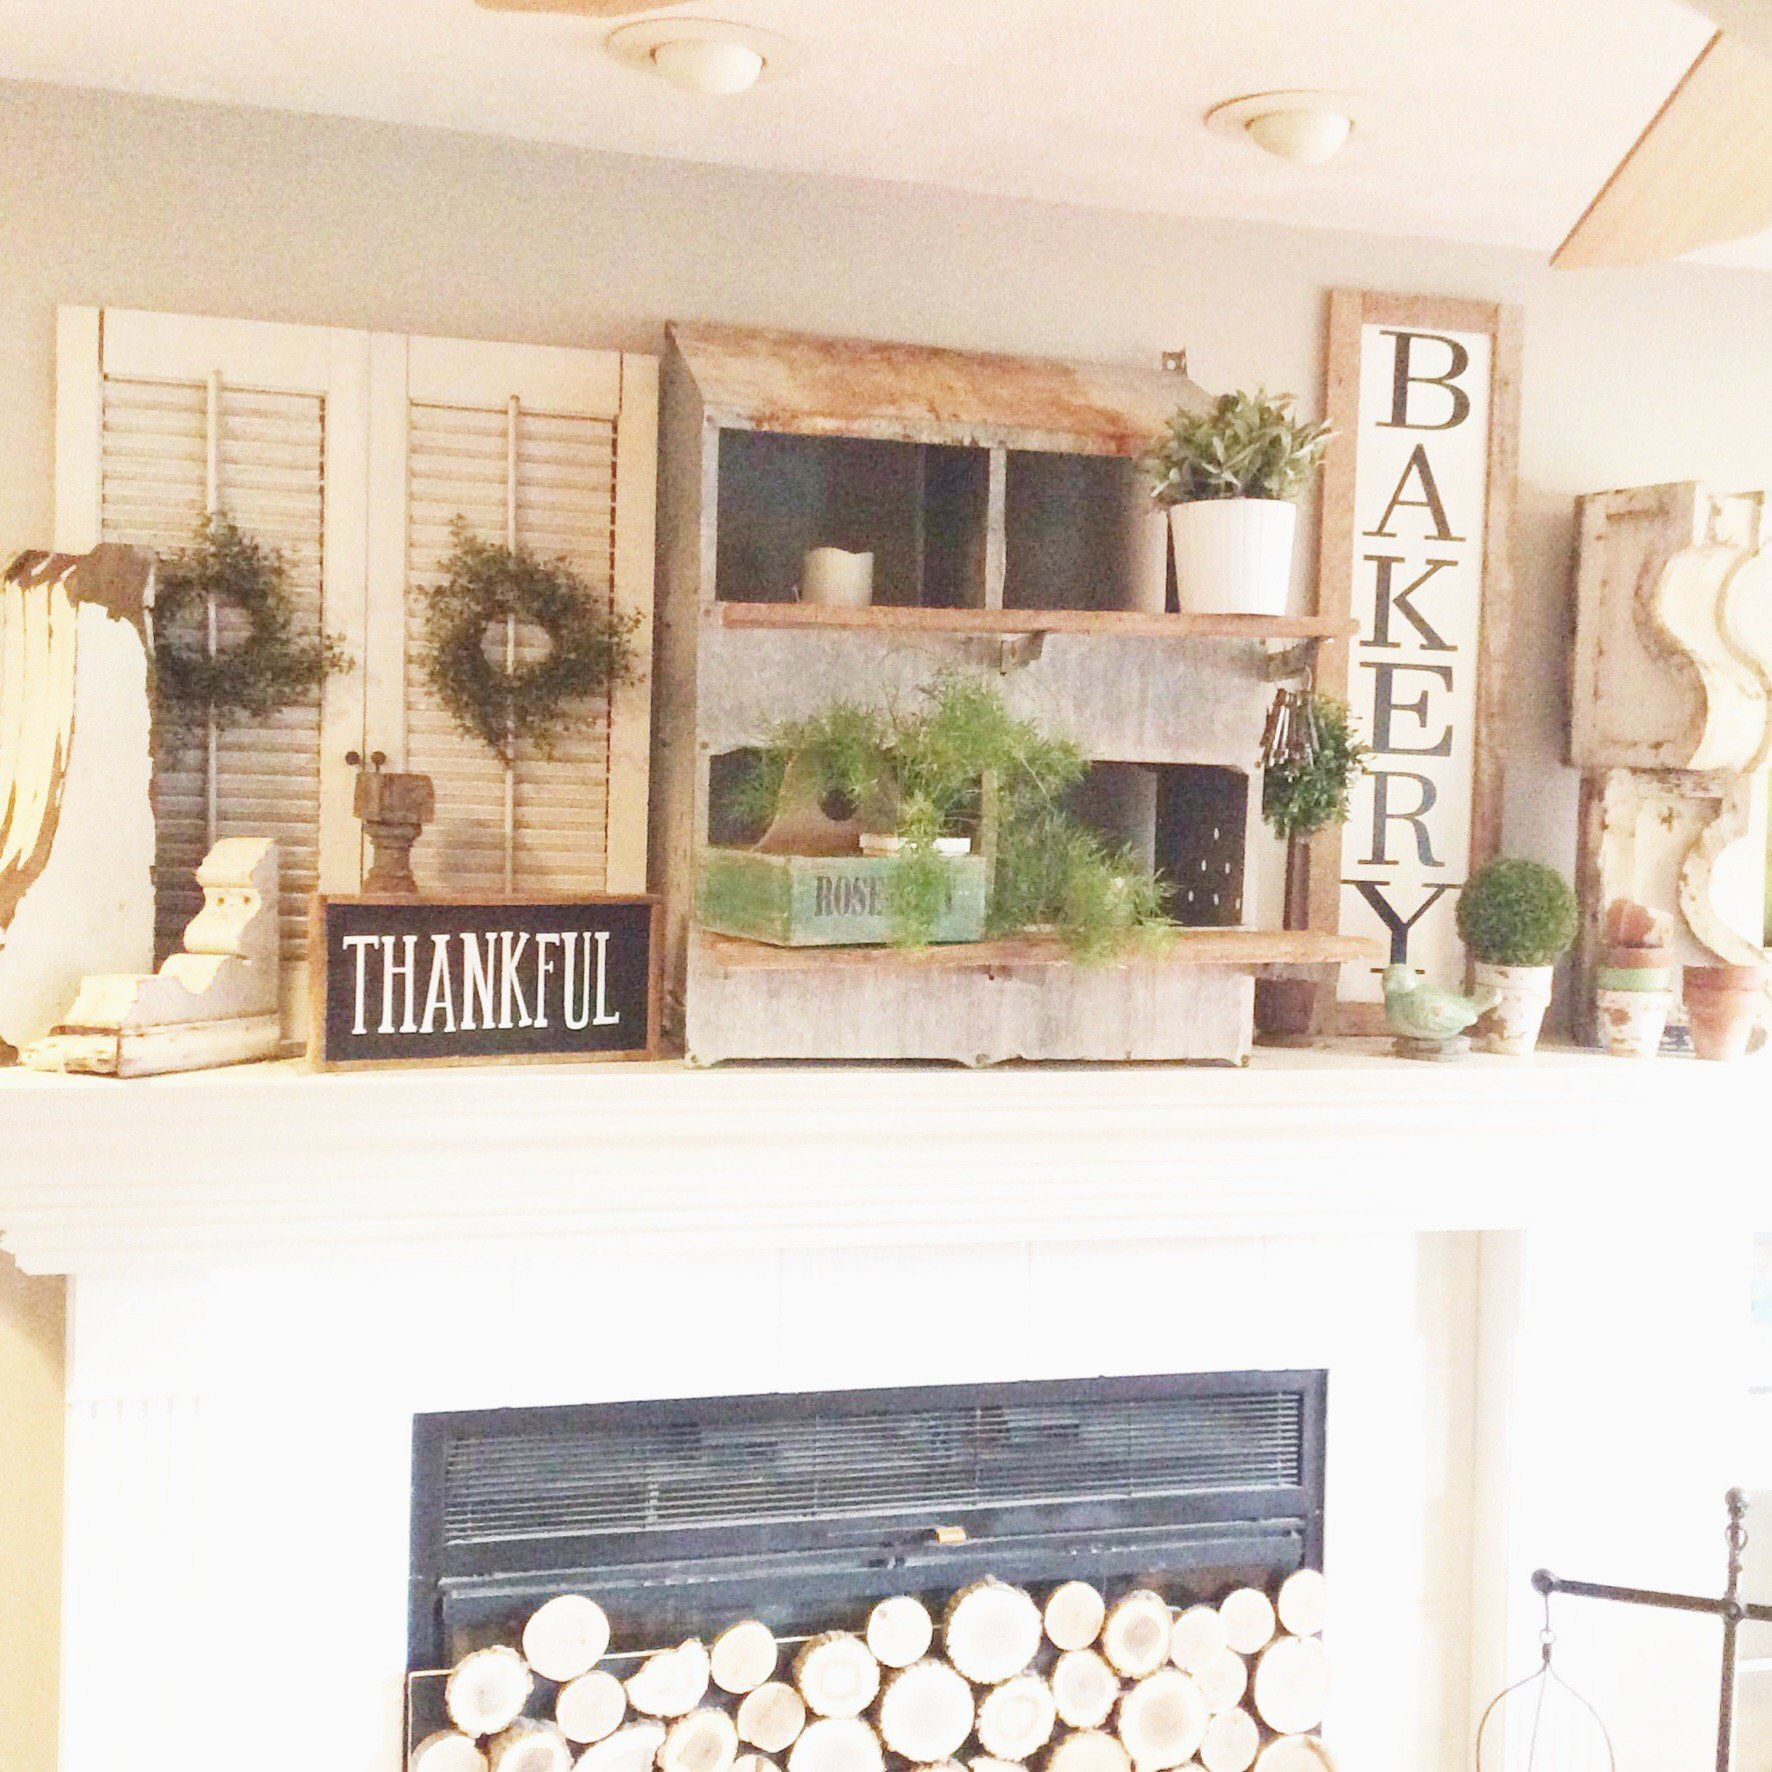 Chicken Roost, Nesting Box, Bakery Sign, Farmhouse Style